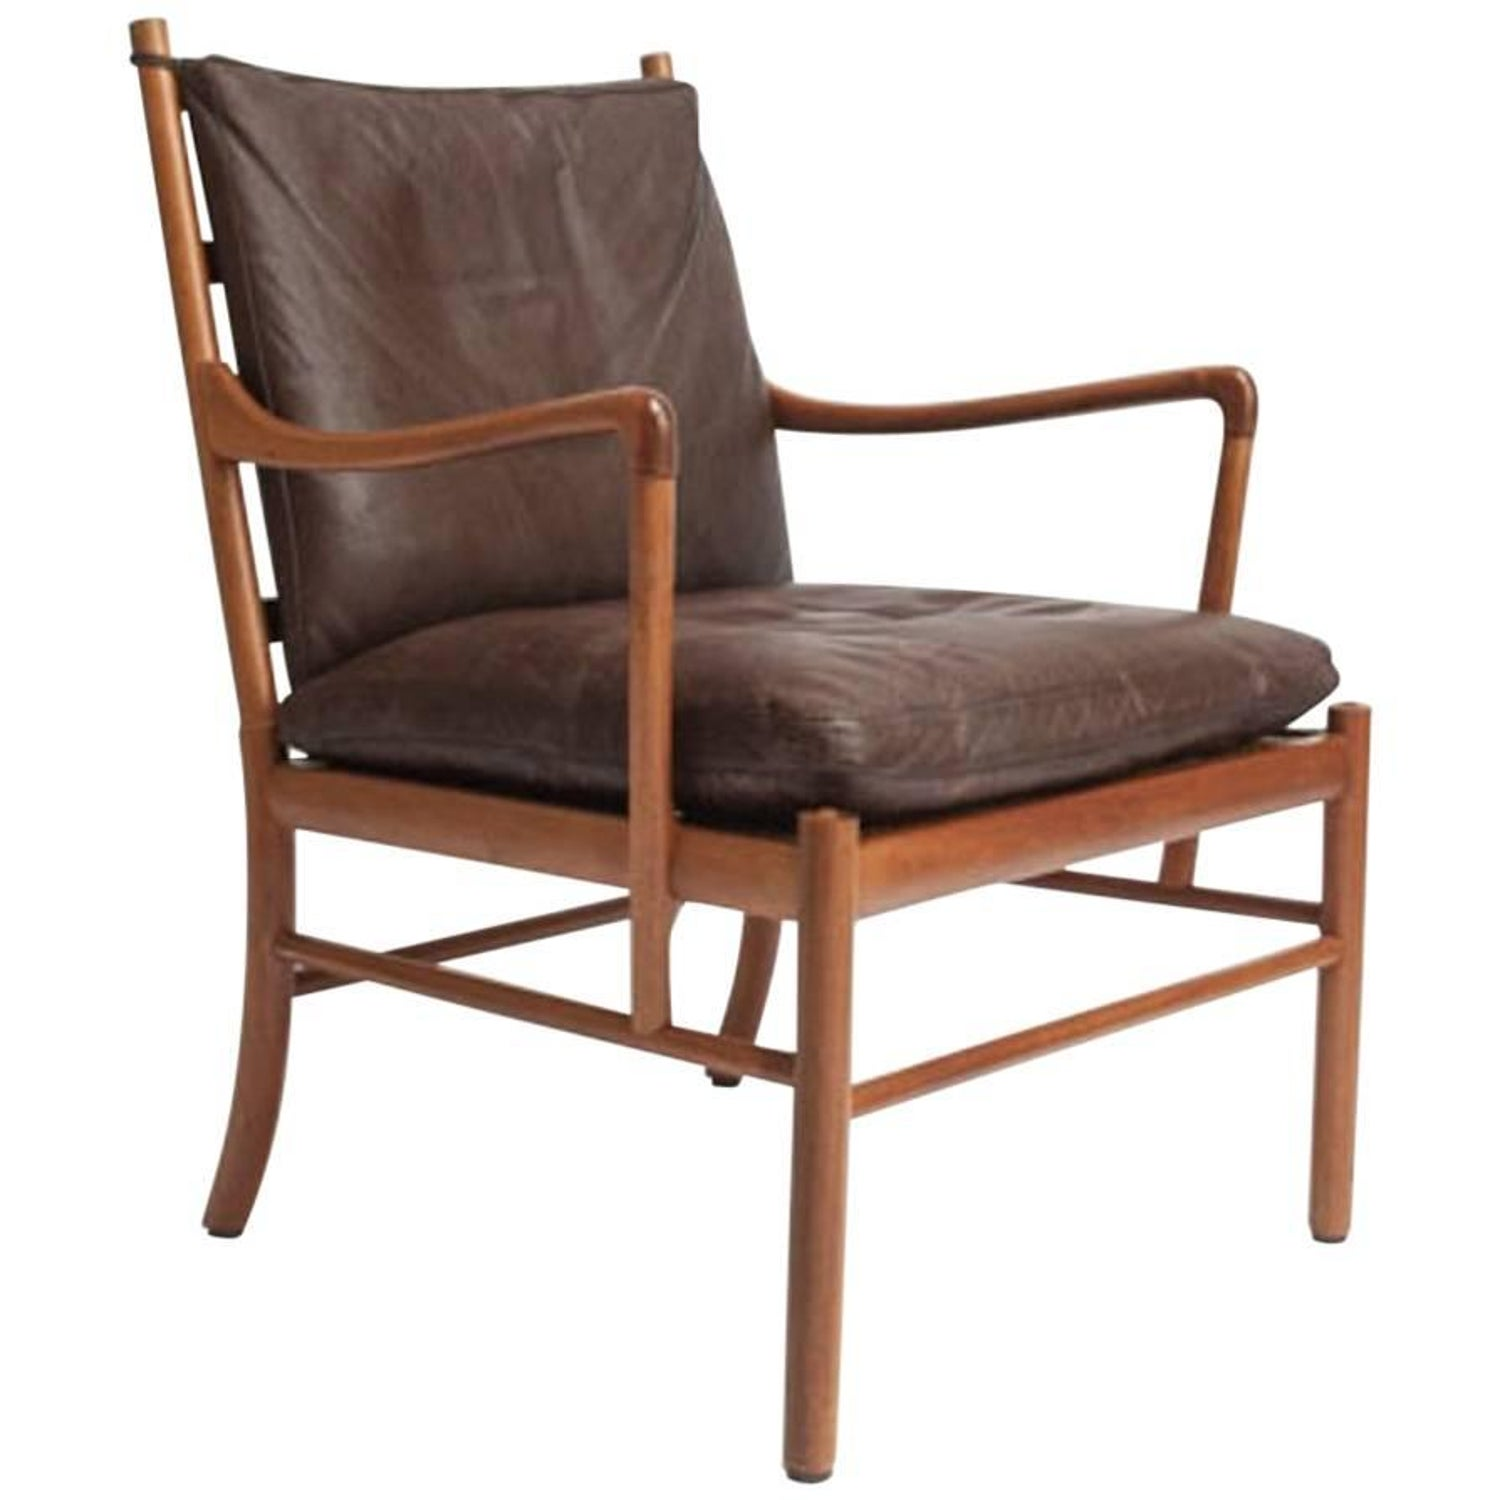 Cane Lounge Chairs 151 For Sale at 1stdibs